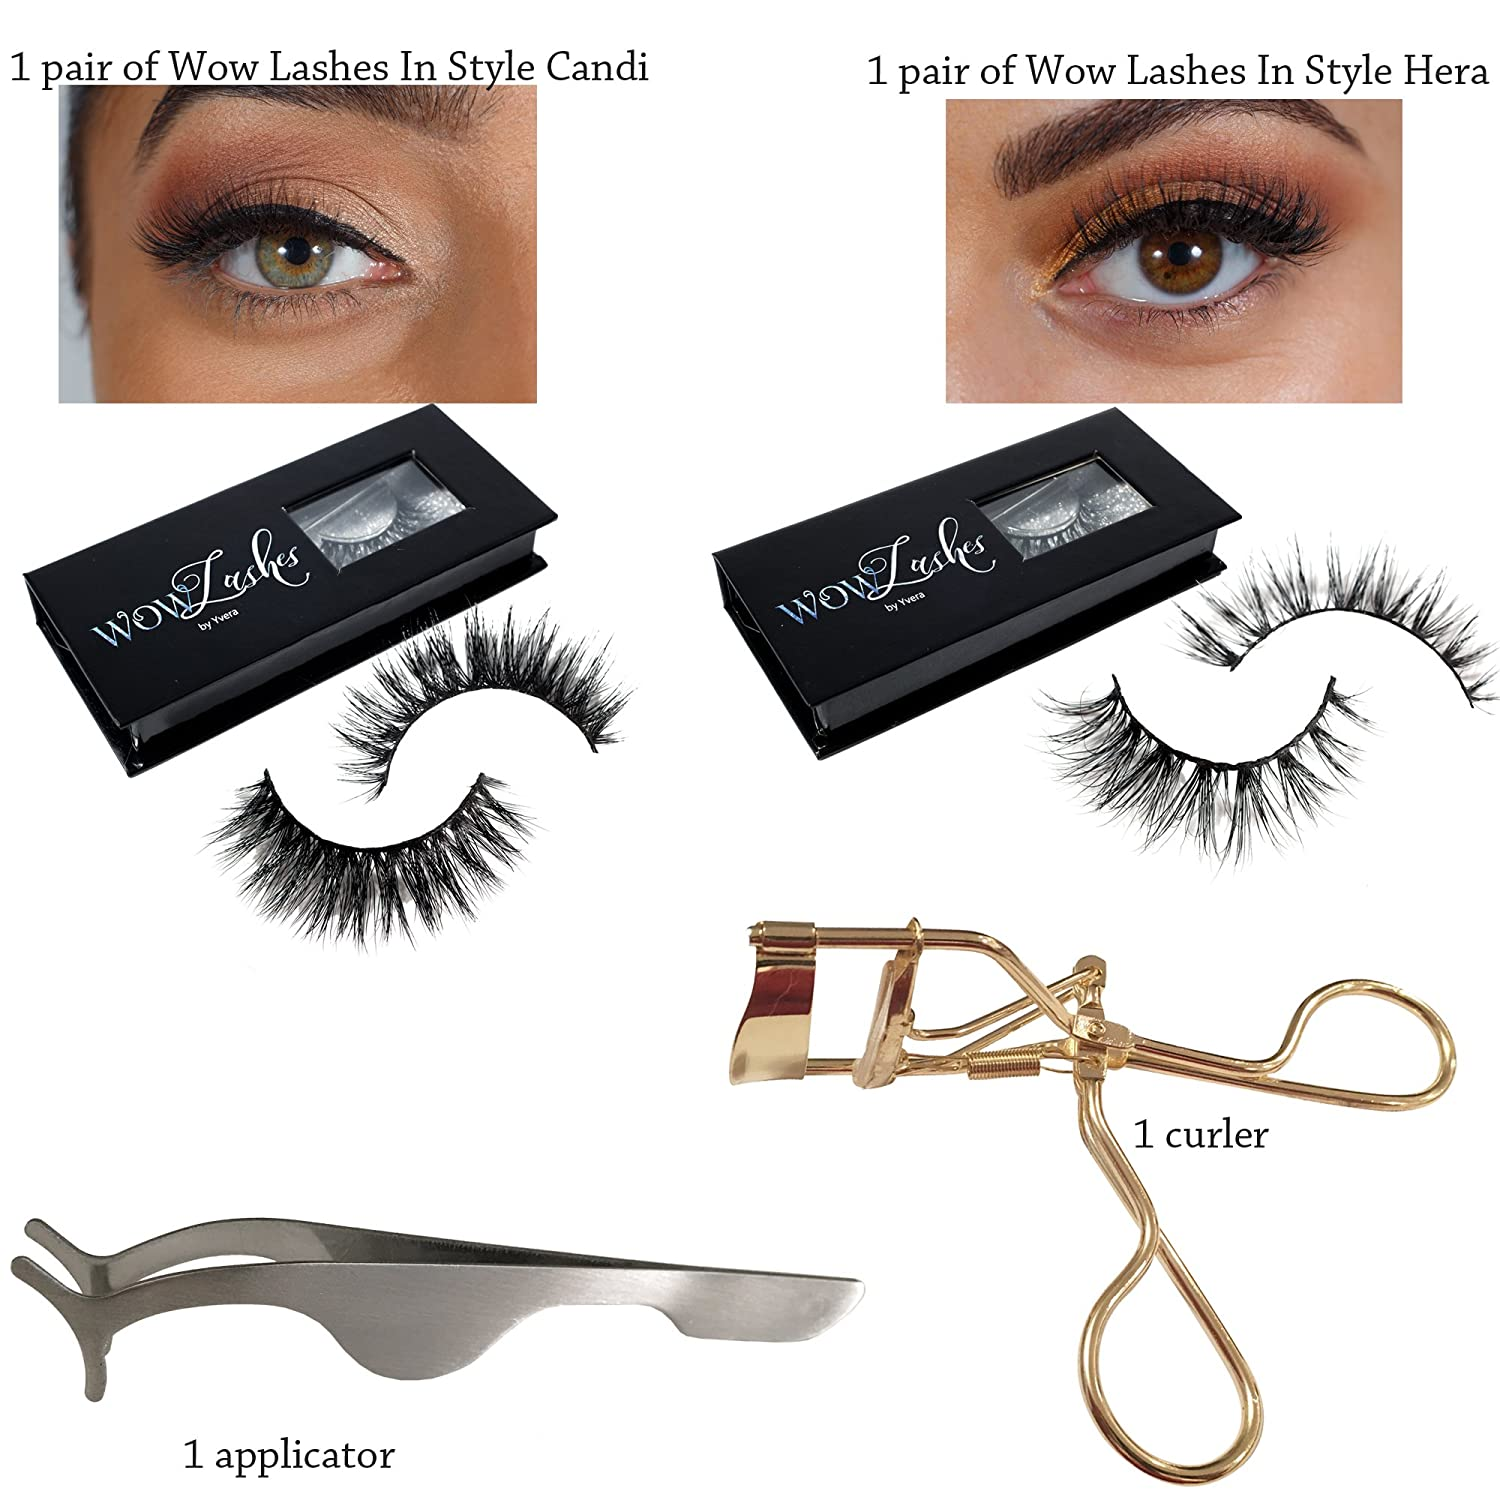 77a3ff68b51 Amazon.com : 2 Pairs Long Wispy Lashes Thick Dramatic Real 3D False Mink  Eyelashes Reusable Cruelty Free 2 Different Styles Bundle Set + Eyelash  Extension ...